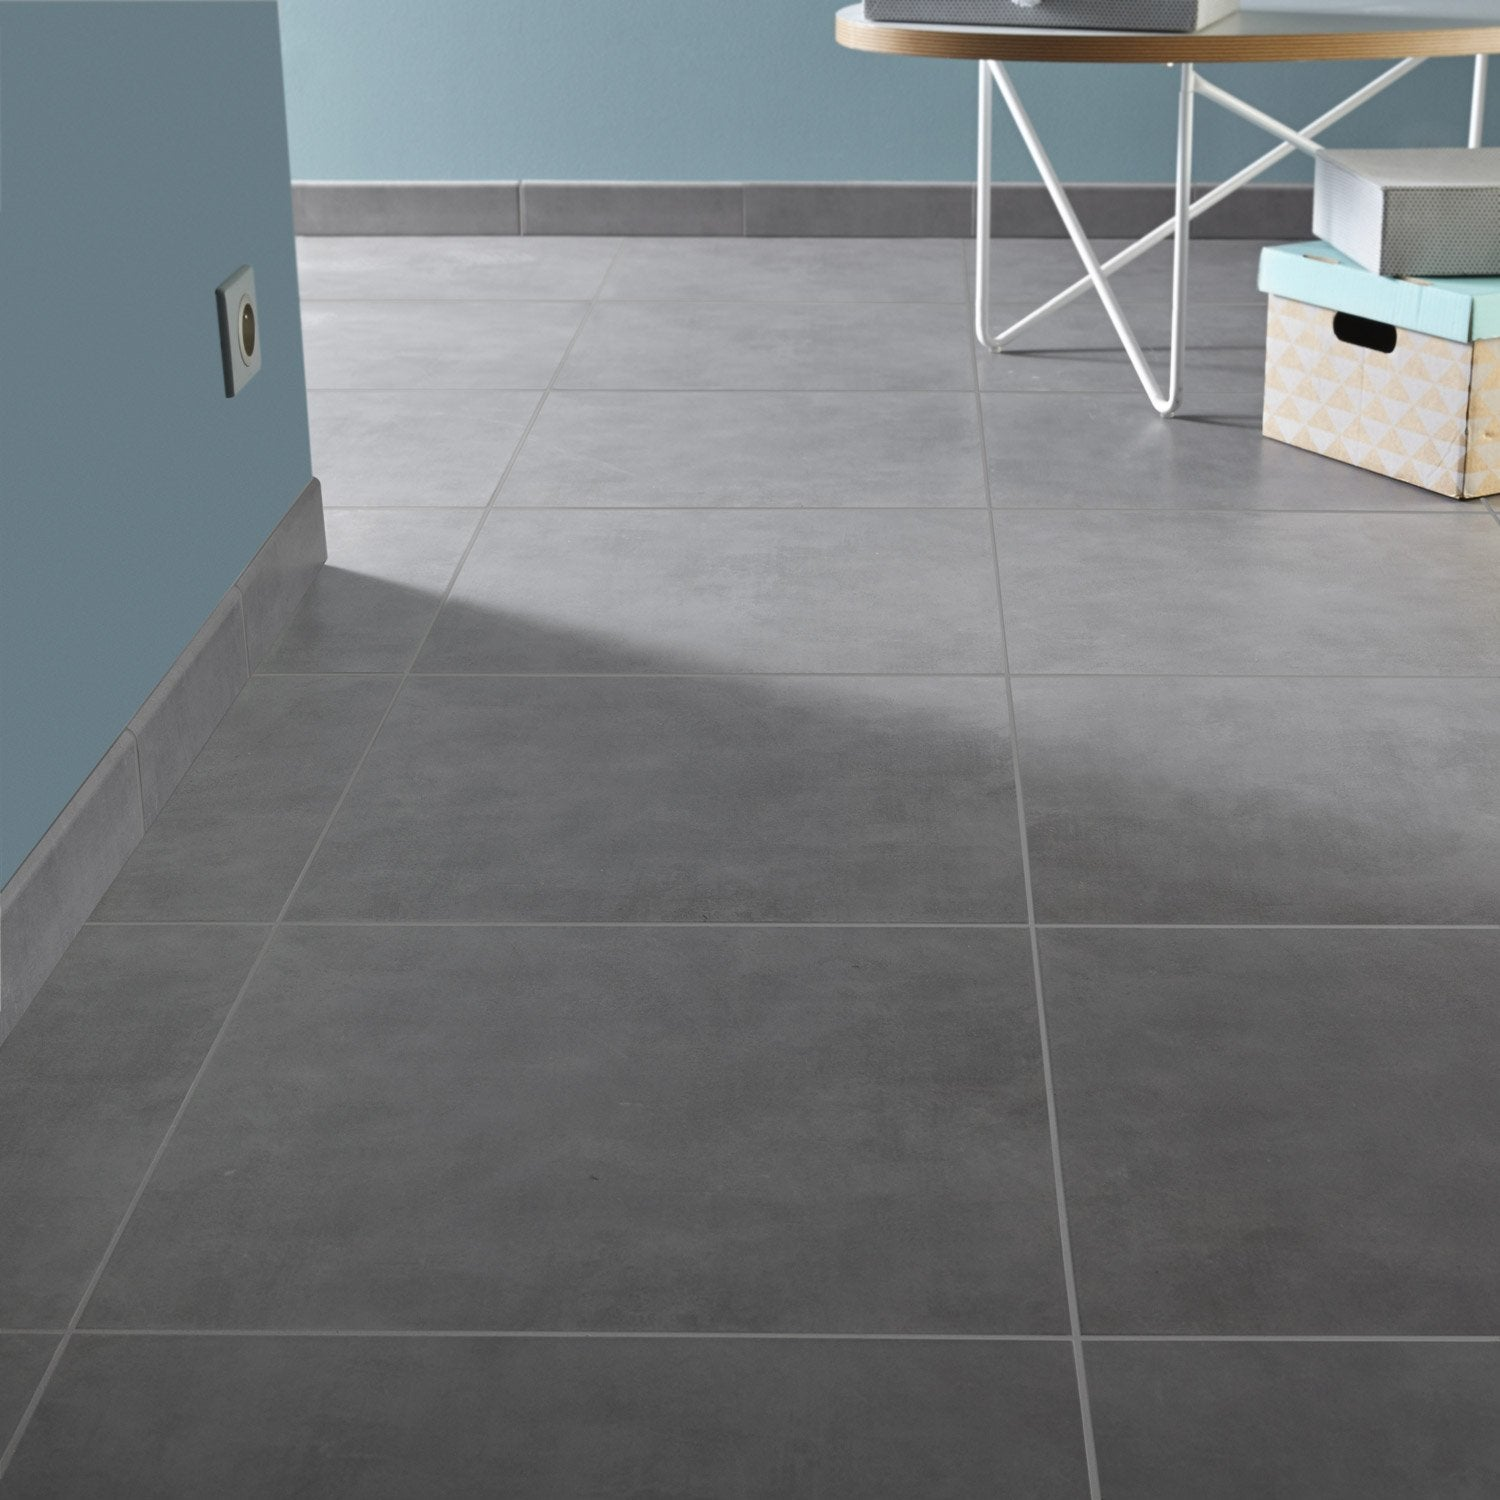 Carrelage sol et mur gris poivr effet b ton kiosque for Carrelage smart tiles leroy merlin